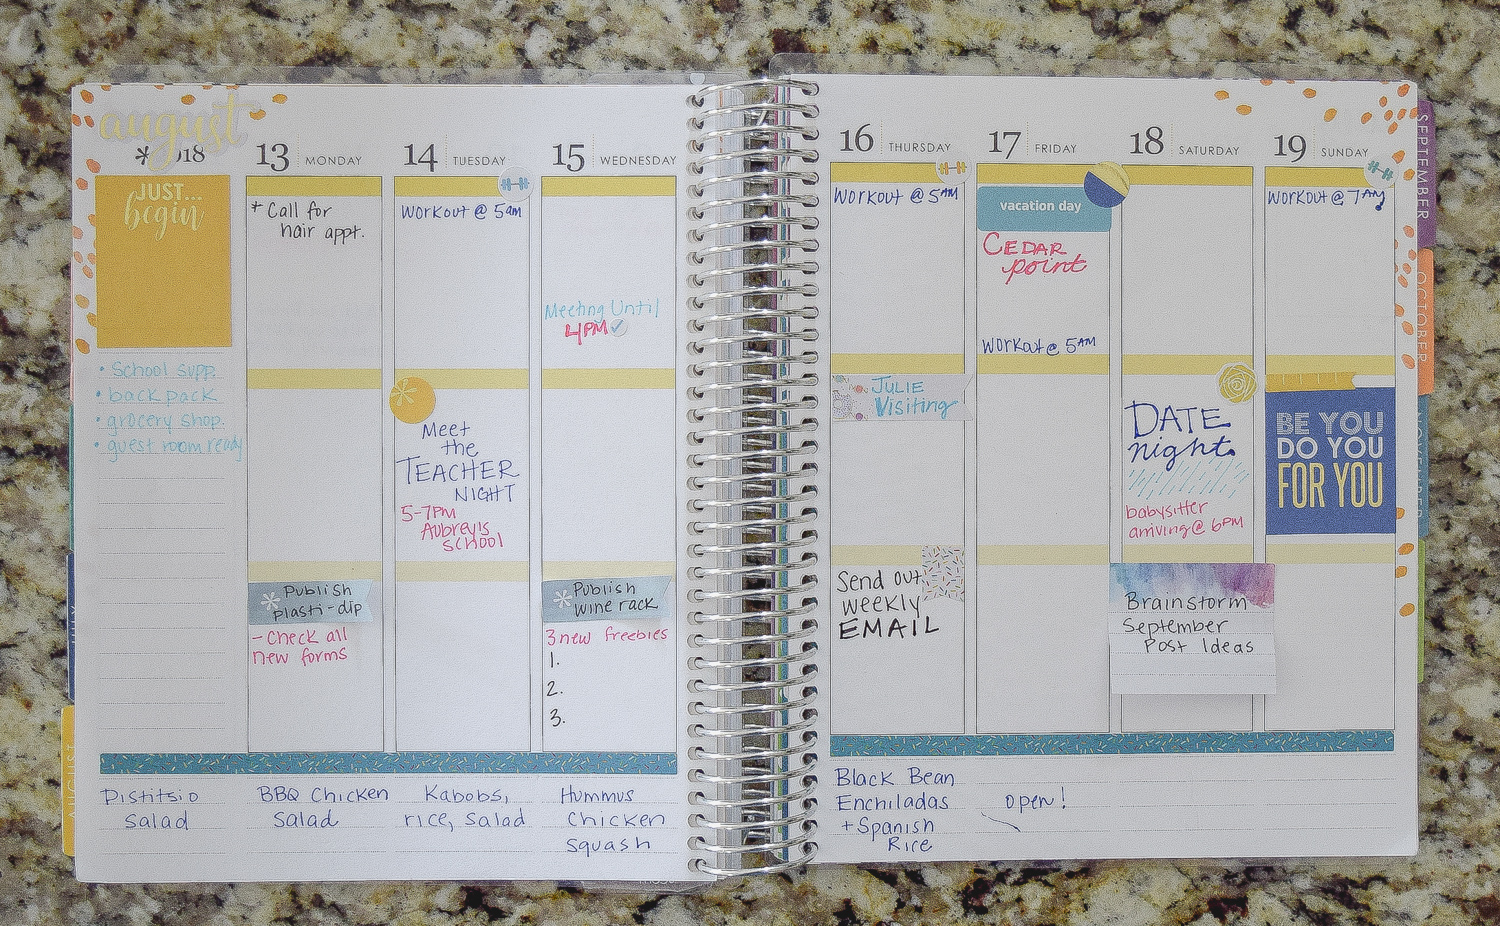 Learn how to use your planner to organize your days and weeks, keep track of your family activities, and more!